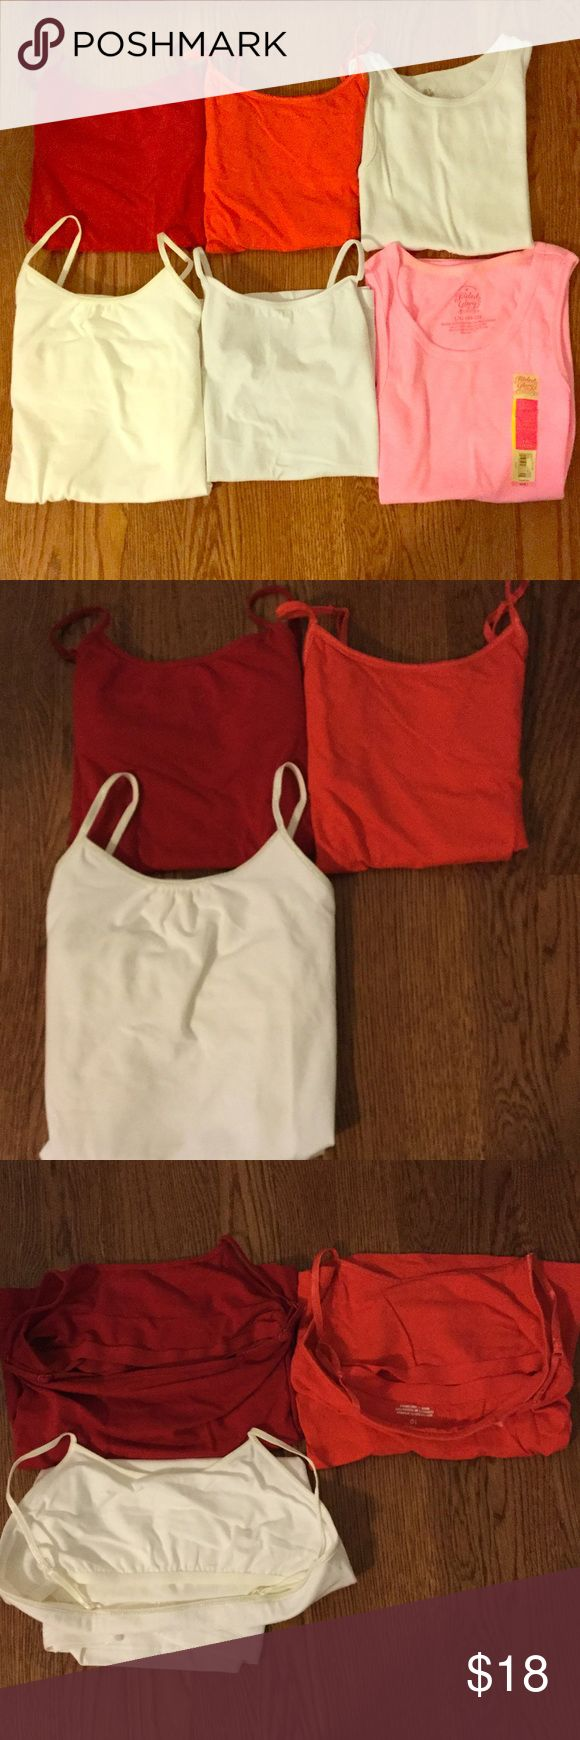 6 size 10, and 10-12 Camis, 3 have bra shelves! The three in the second photo have bra shelves: Red- 10, Orange- 10, Cream- 10-12. The white (without spaghetti straps)- 10, the white (with spaghetti straps)- 10-12, the neon pink- (NWT) 10-12--do not have bra shelves. Lightly warn, + machine washable. I wash all of the clothes + iron them before shipping them. $18 for all 6 camis. 2 camis for $6, 3 for $9, 4 for $12, 5 for $15. Very comfortable + warm, good to wear underneath sweaters and…